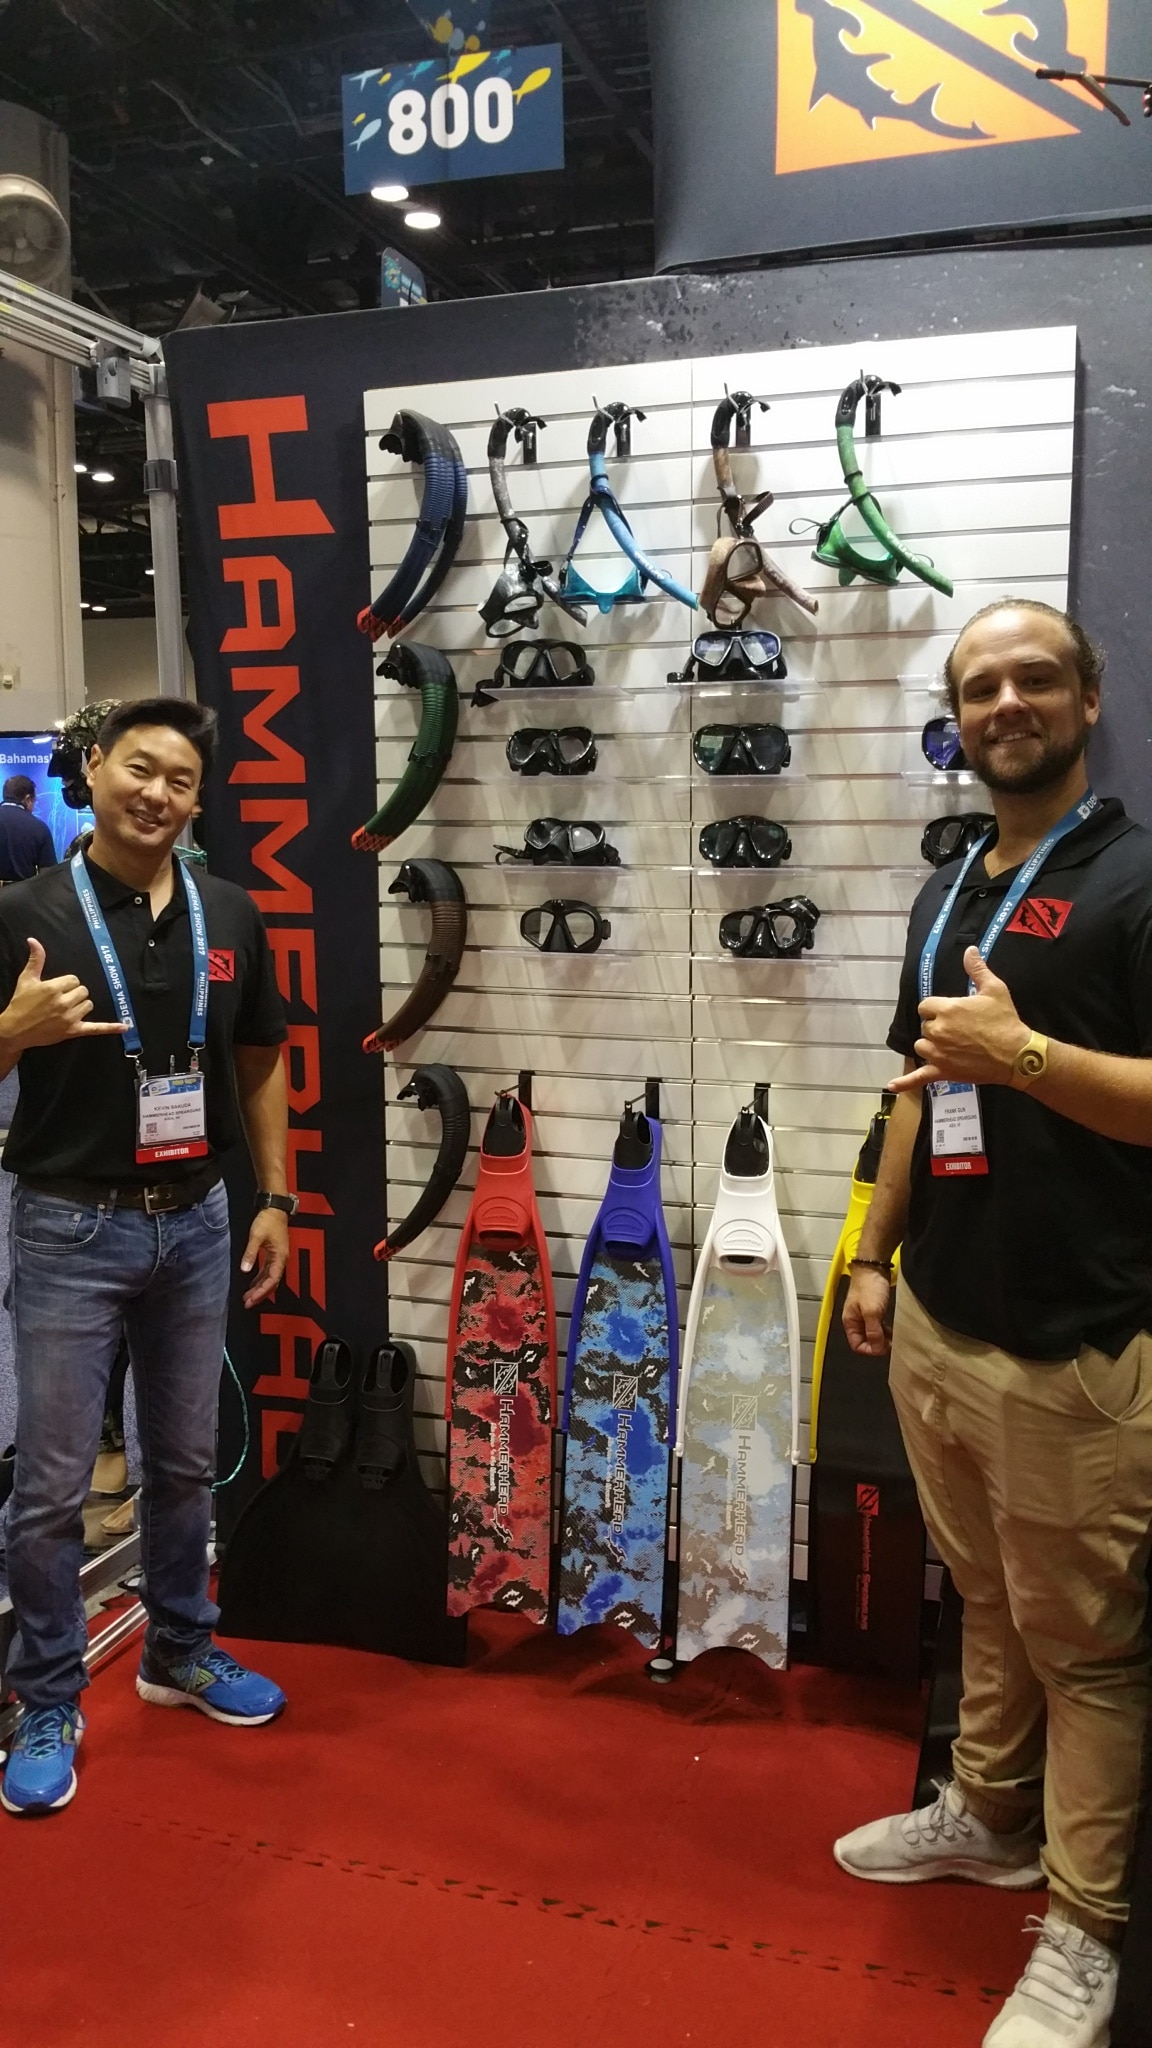 Kevin and Frank display hyrdo-dipped masks/snorkels and colorful fins